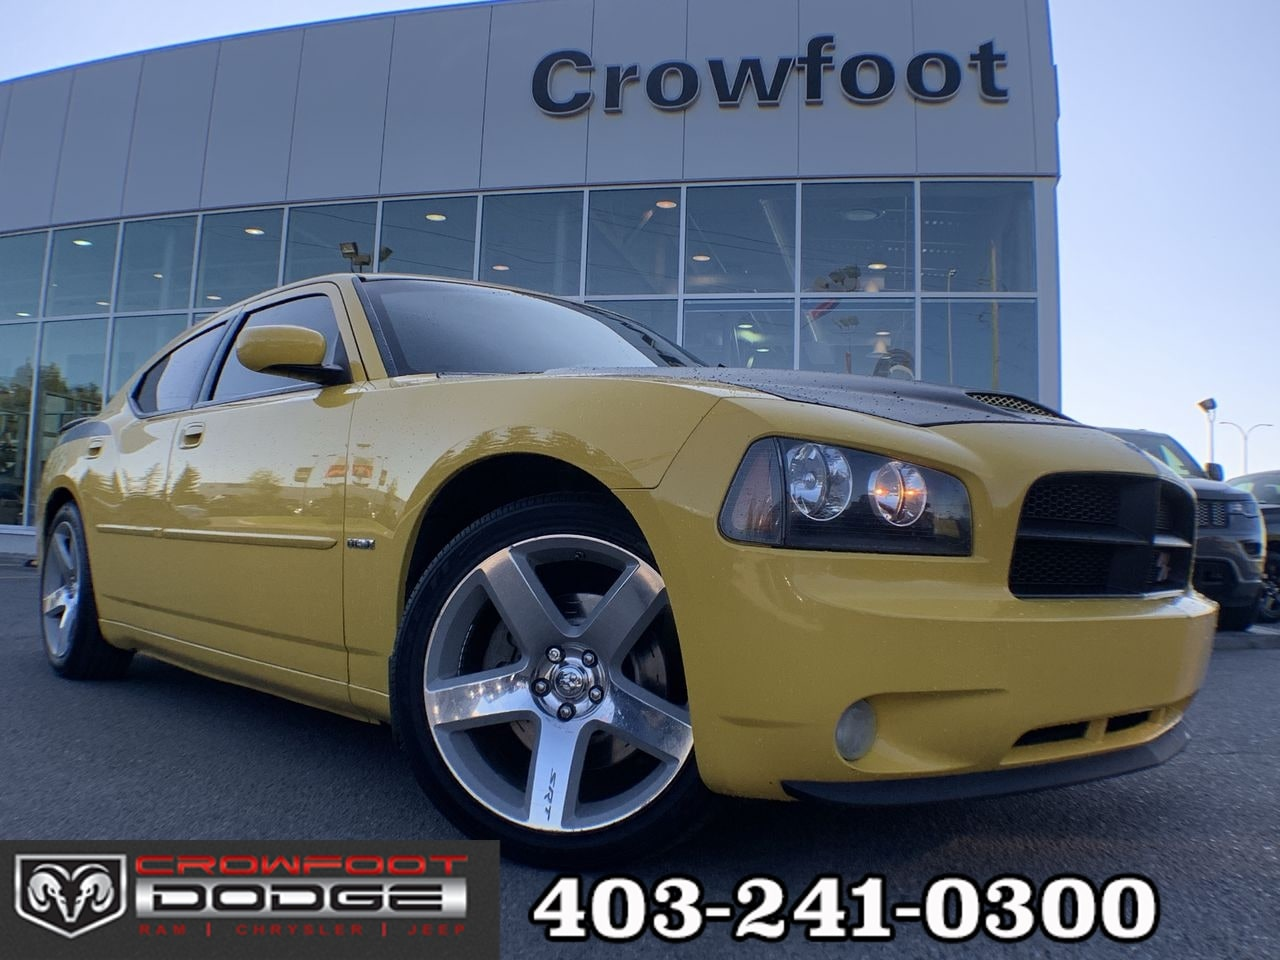 2006 Dodge Charger R/T DAYTONA LIMITED EDITION